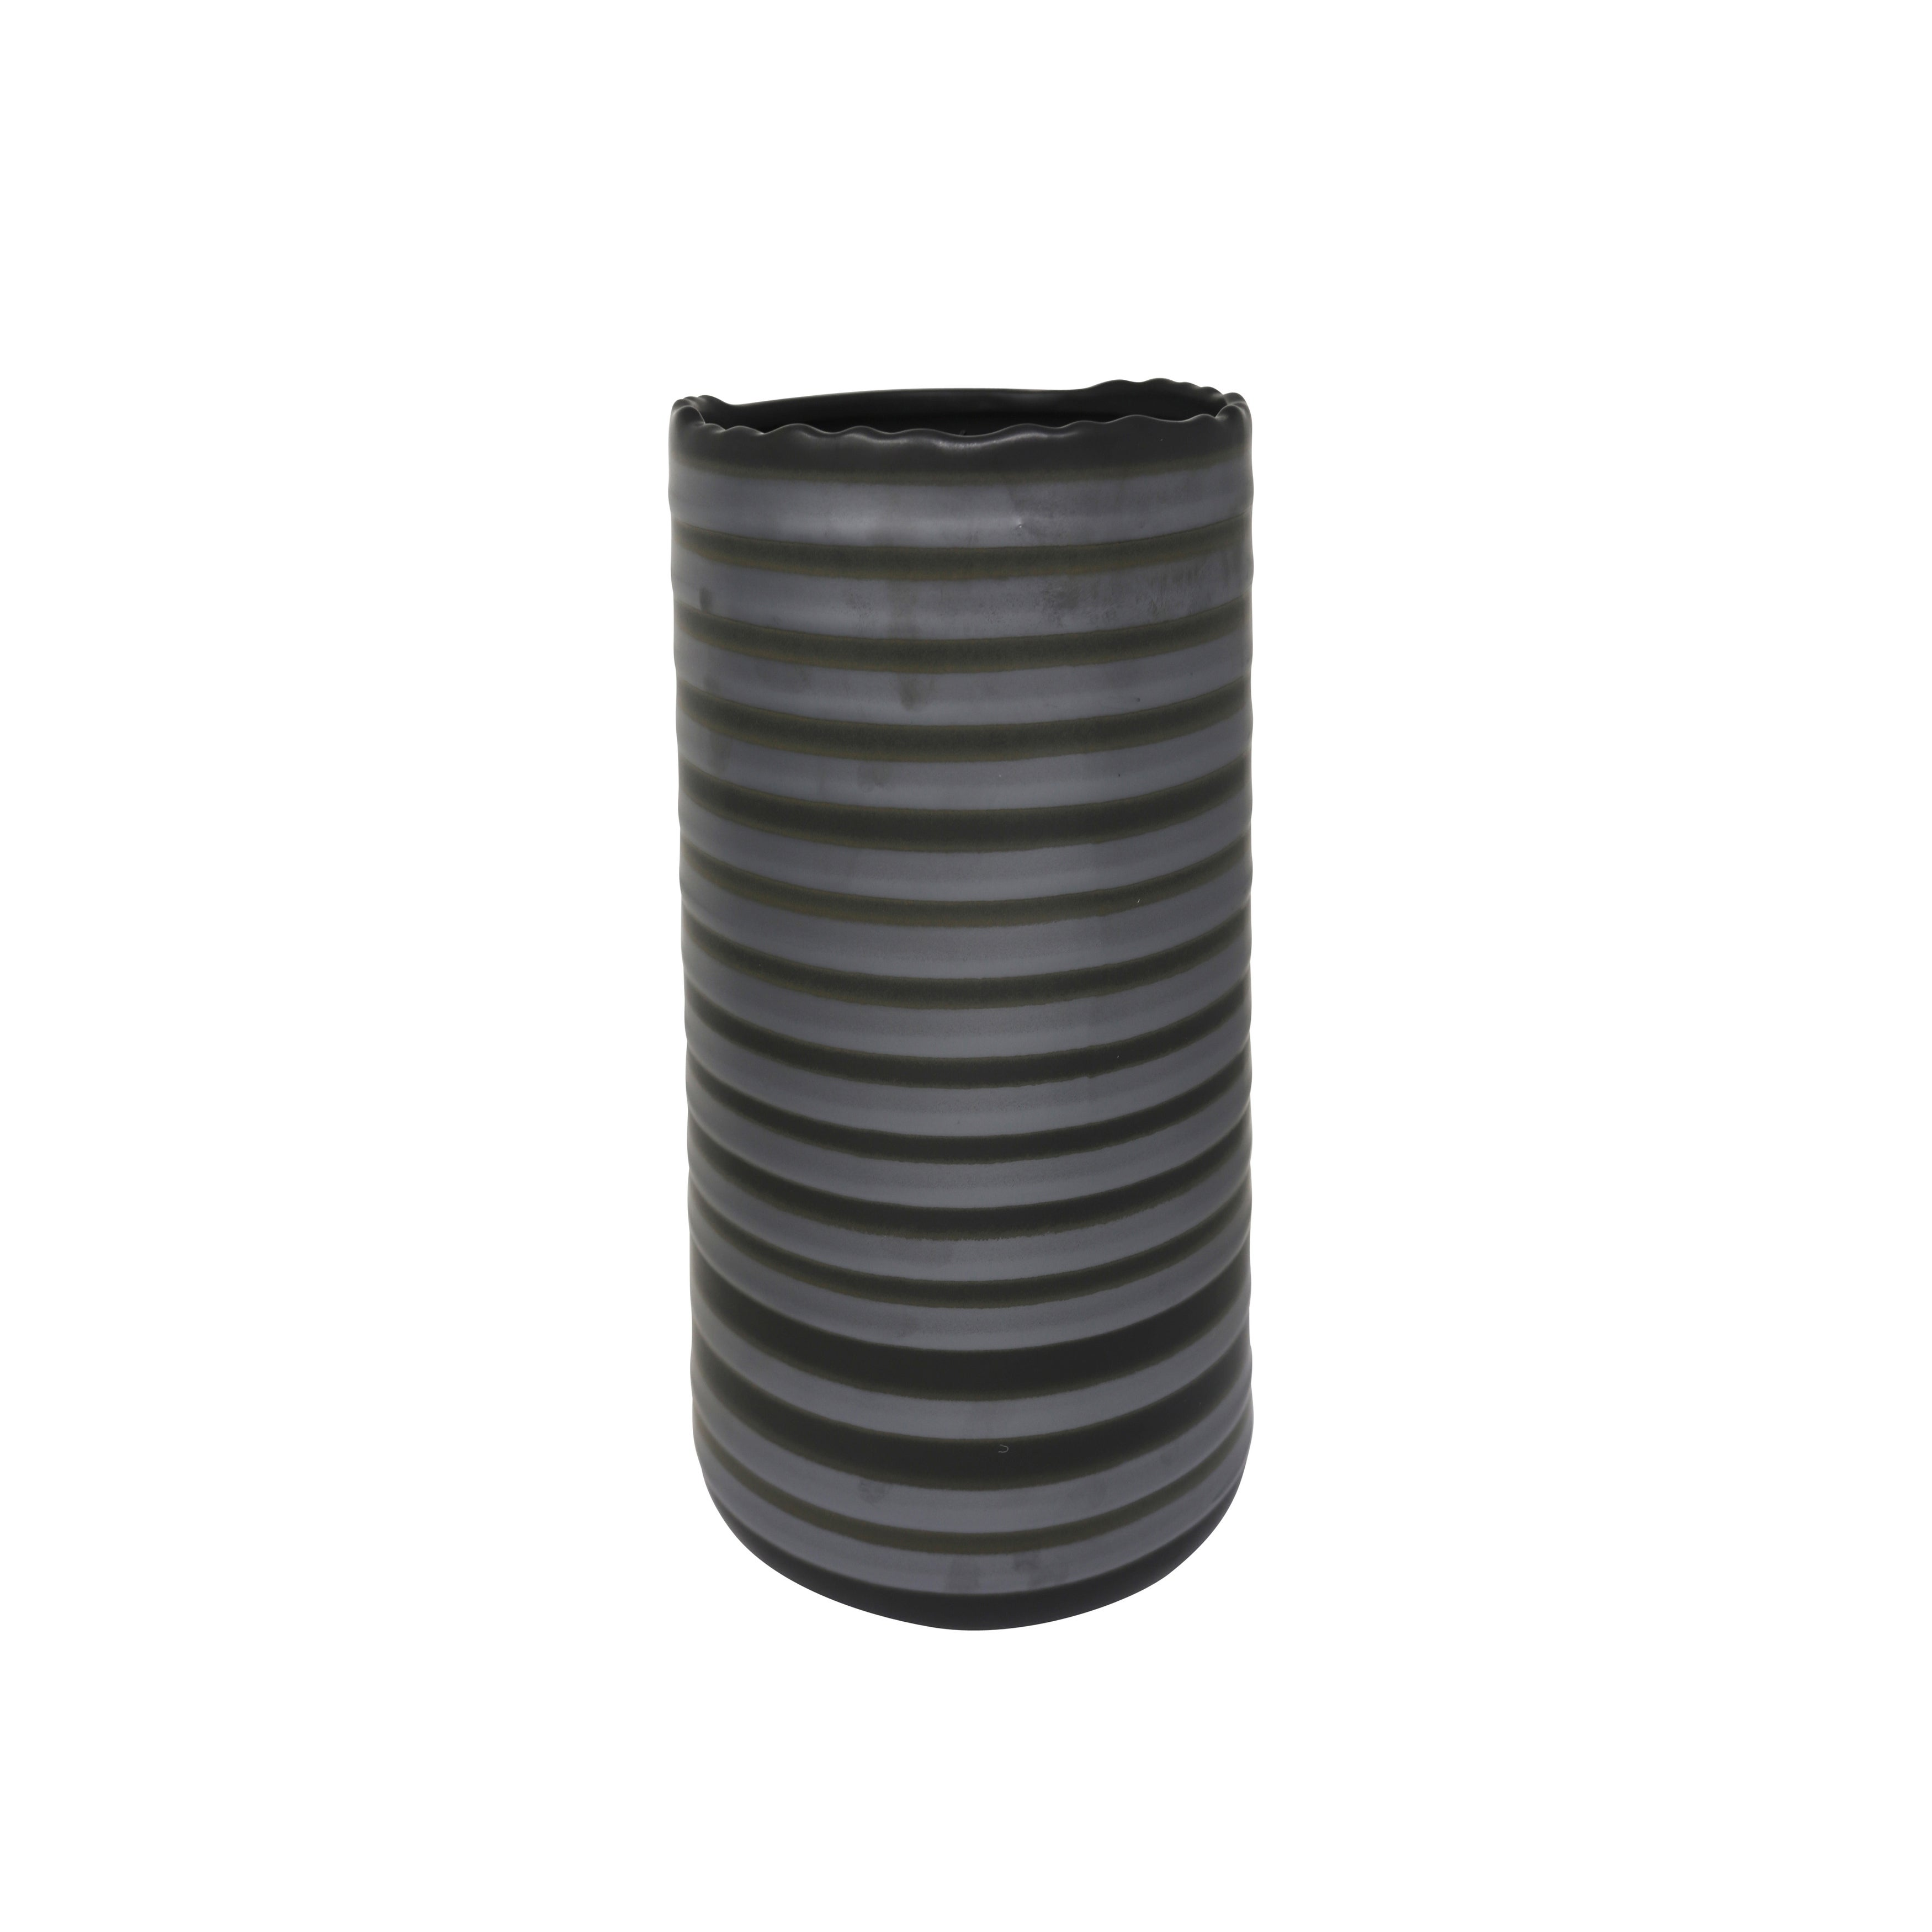 Ceramic Table Vase with Asymmetrical Rim and Ribbed Pattern Design, Small, Black and Gray